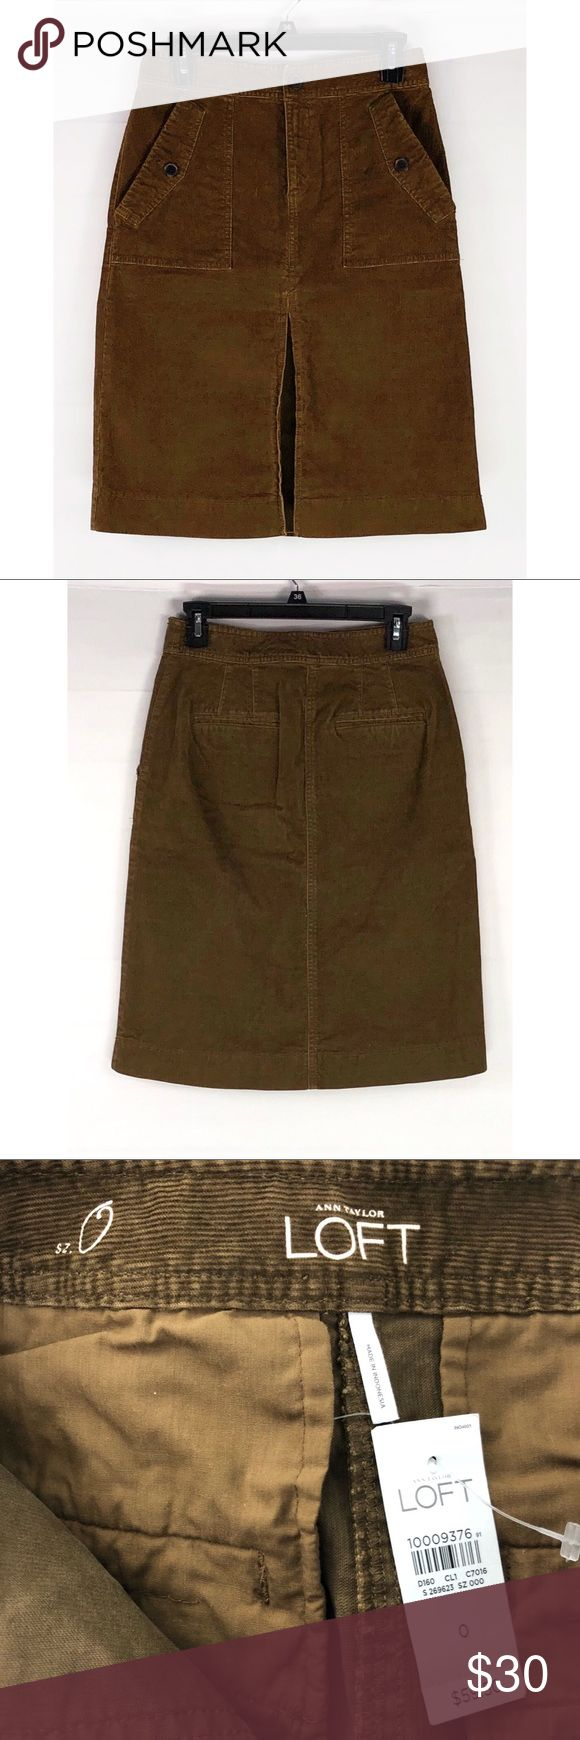 Loft Corduroy Brown Pencil Skirt New with tags!! LOFT Skirts Pencil